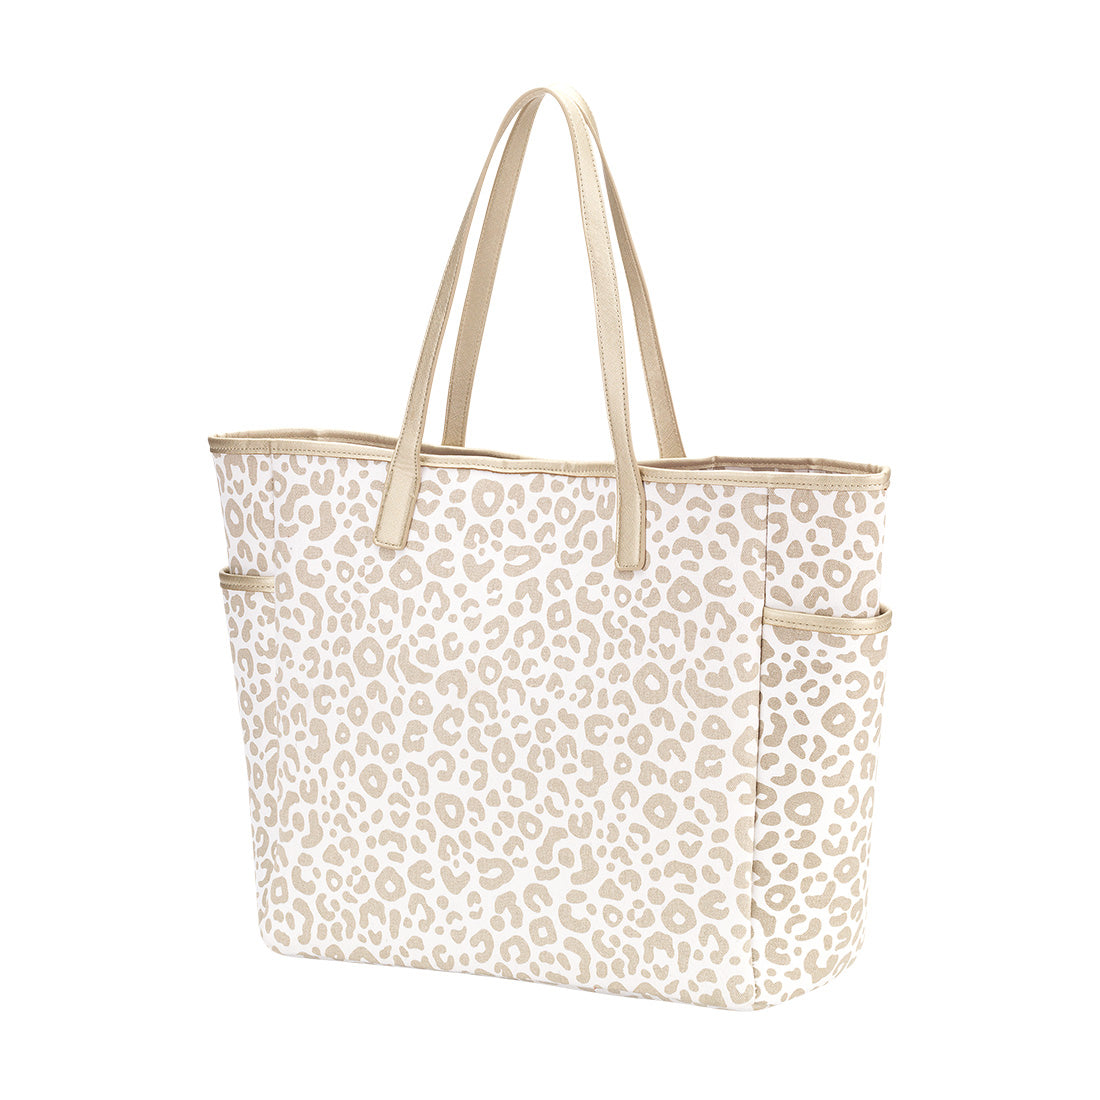 Ivory & Gold Leopard Tote Bag with Monogram,Tote Bag - Dirt Road Divas Boutique